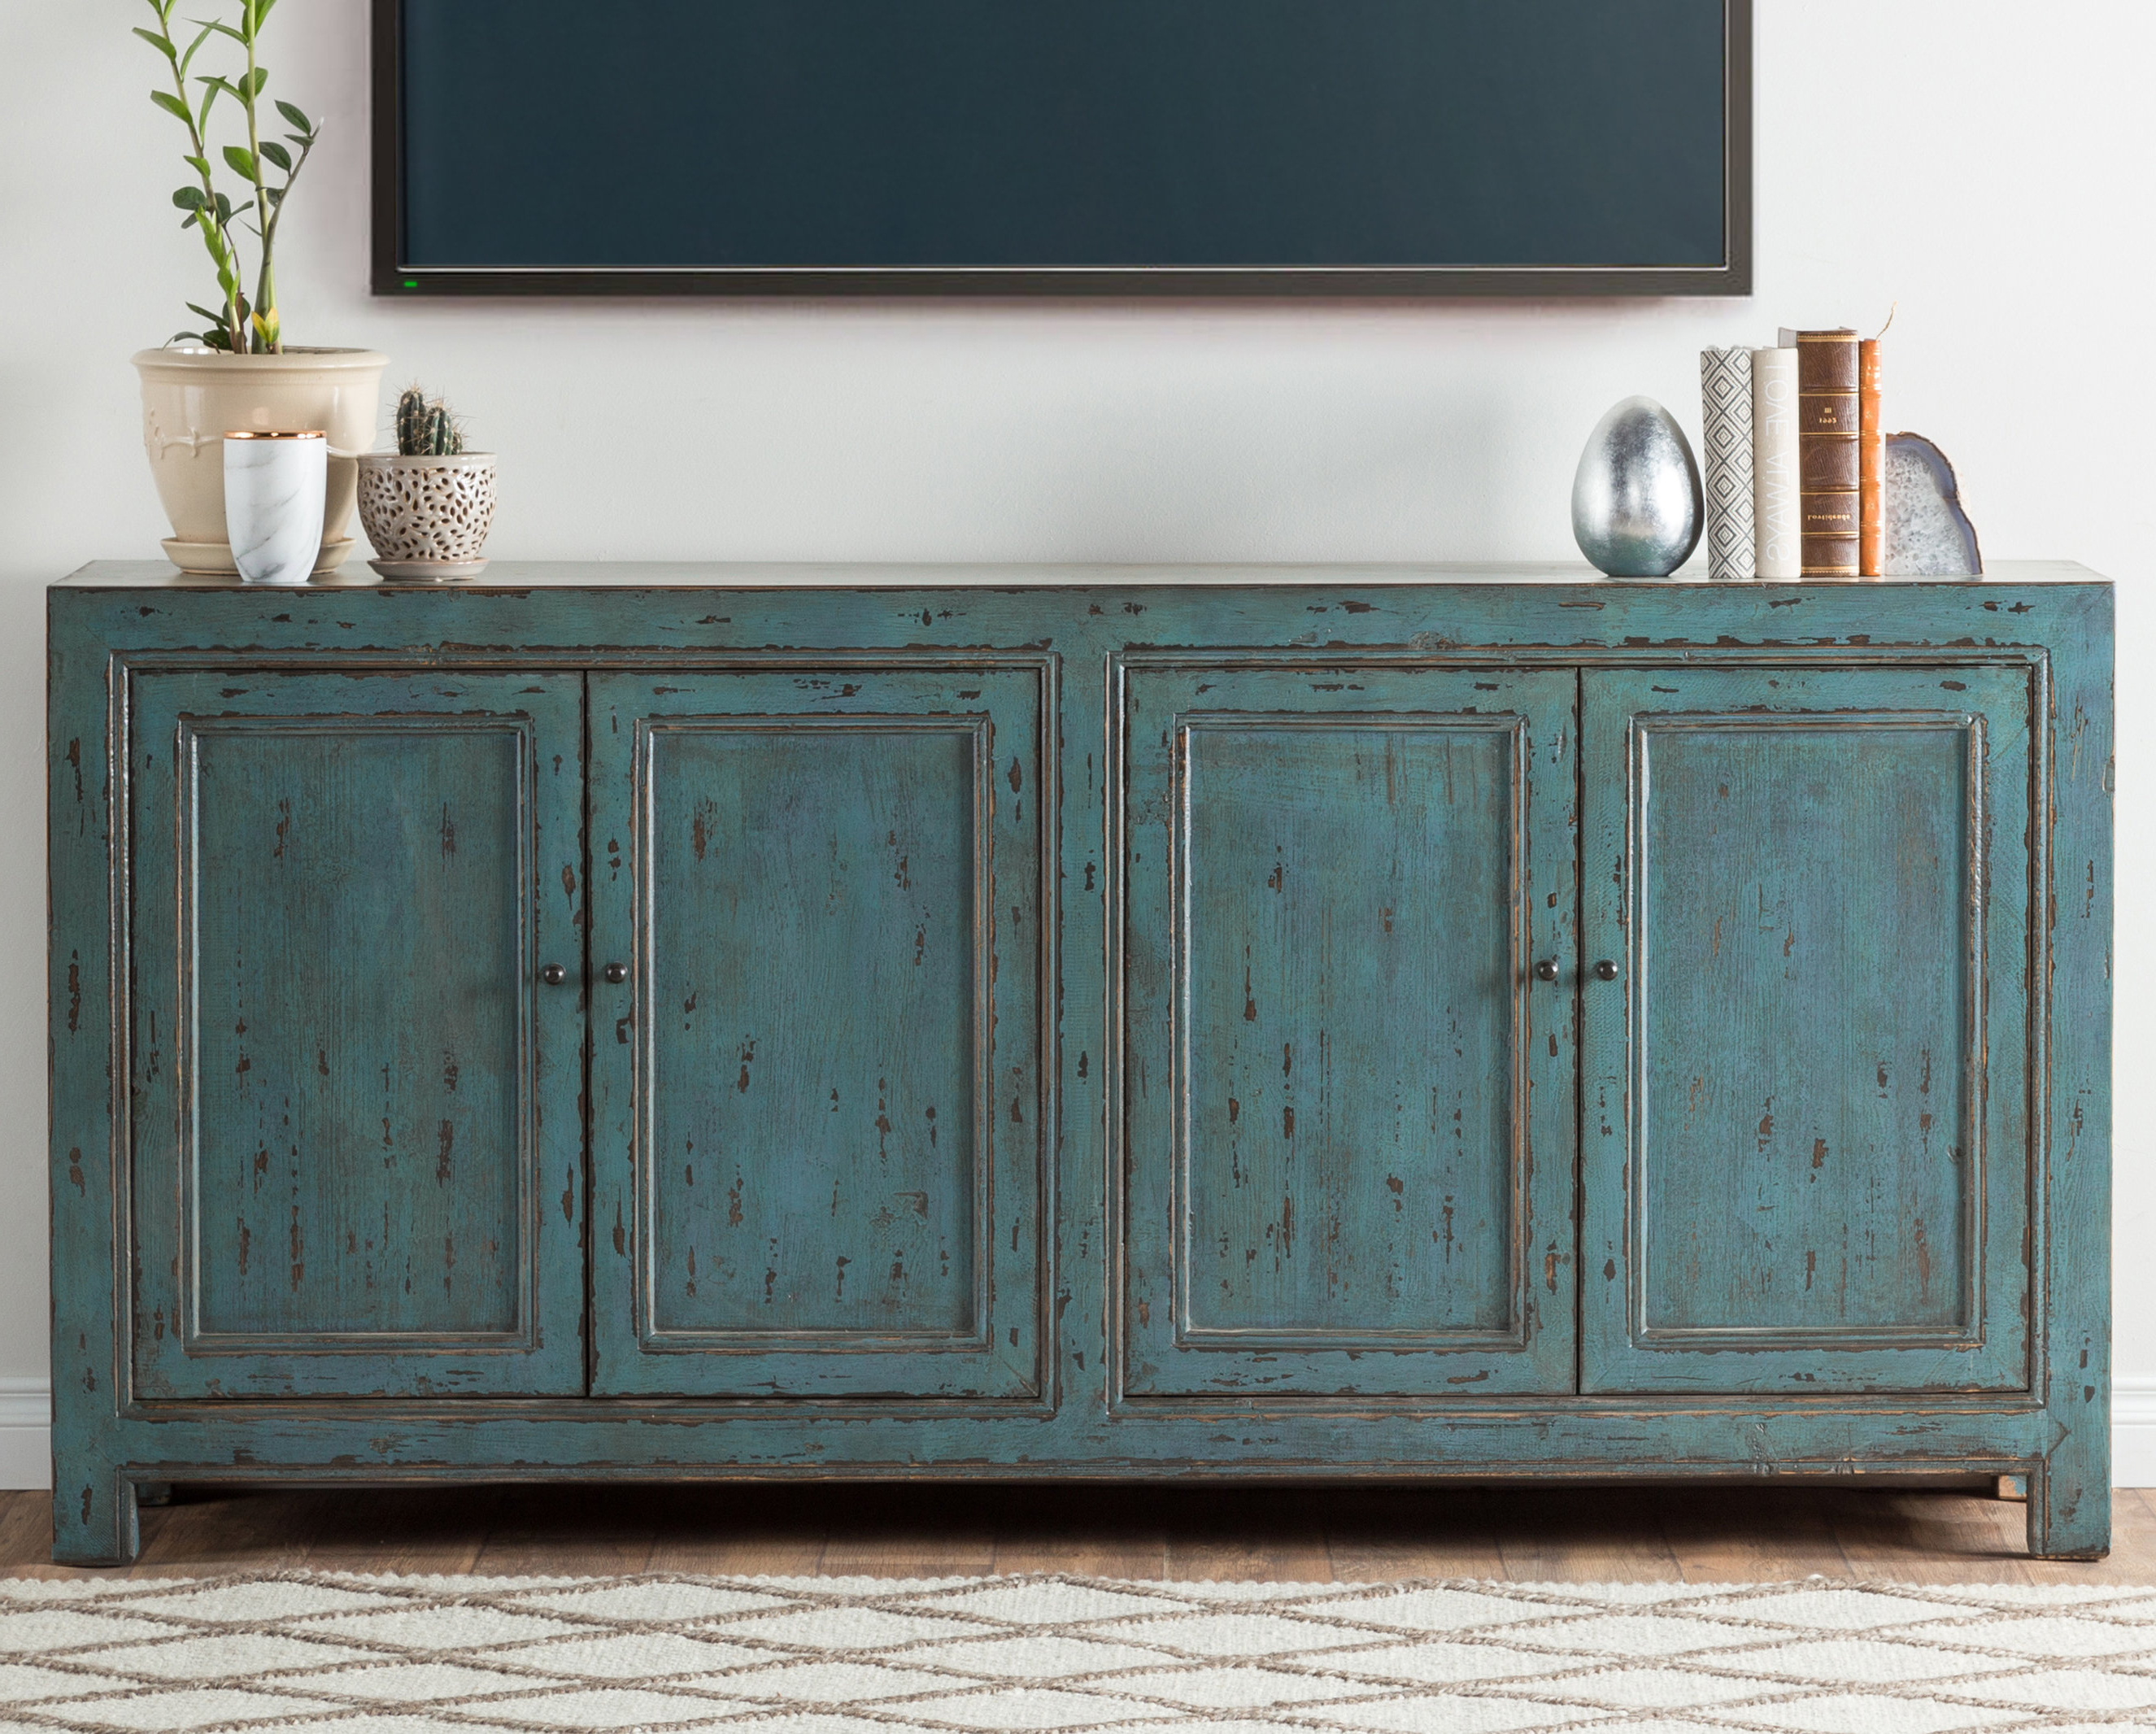 Widely Used Reclaimed Pine 4 Door Sideboards Within August Grove Tapscott Reclaimed Pine 4 Door Sideboard & Reviews (View 20 of 20)